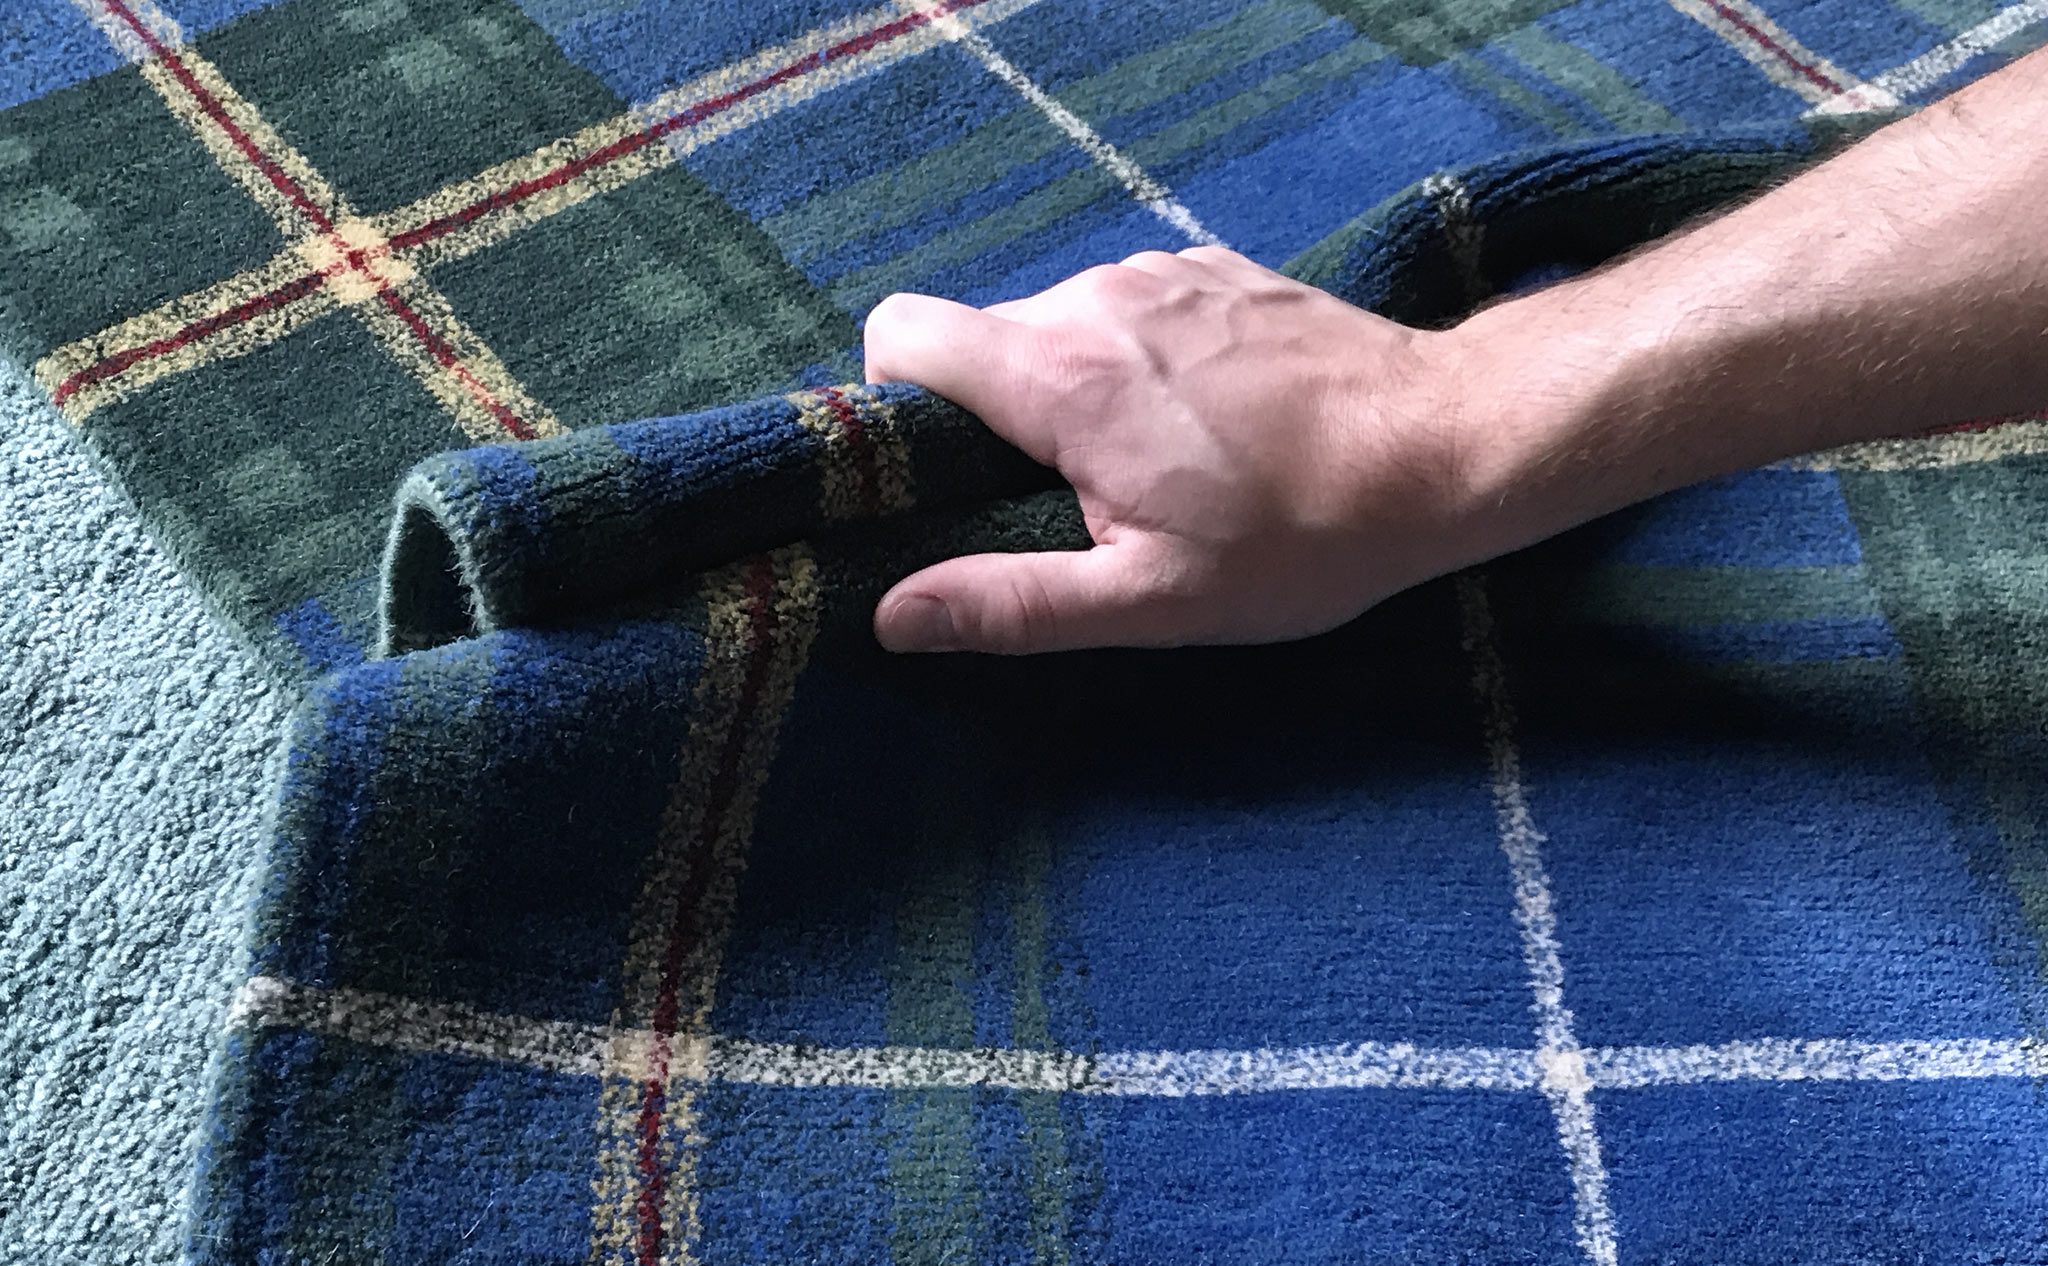 The fastidious notion of 'handle' as the pliability and weight felt while grasping the body of the carpet.   Image by The Ruggist.